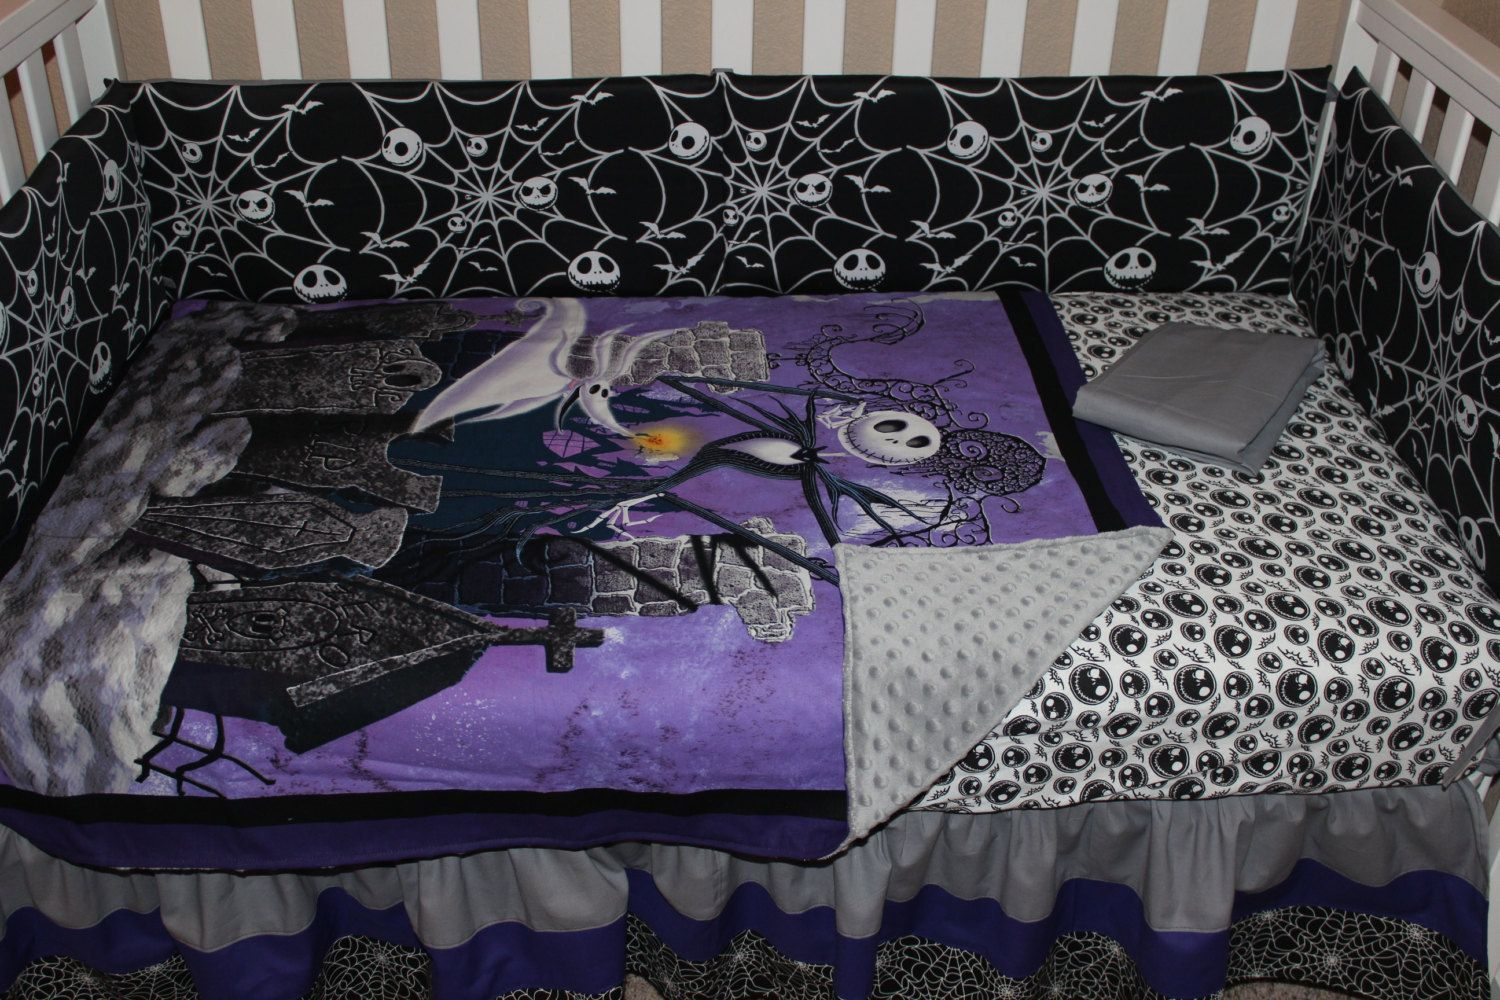 crib bedding set, jack skellington nightmare before christmas 5nightmare before christmas crib bedding set